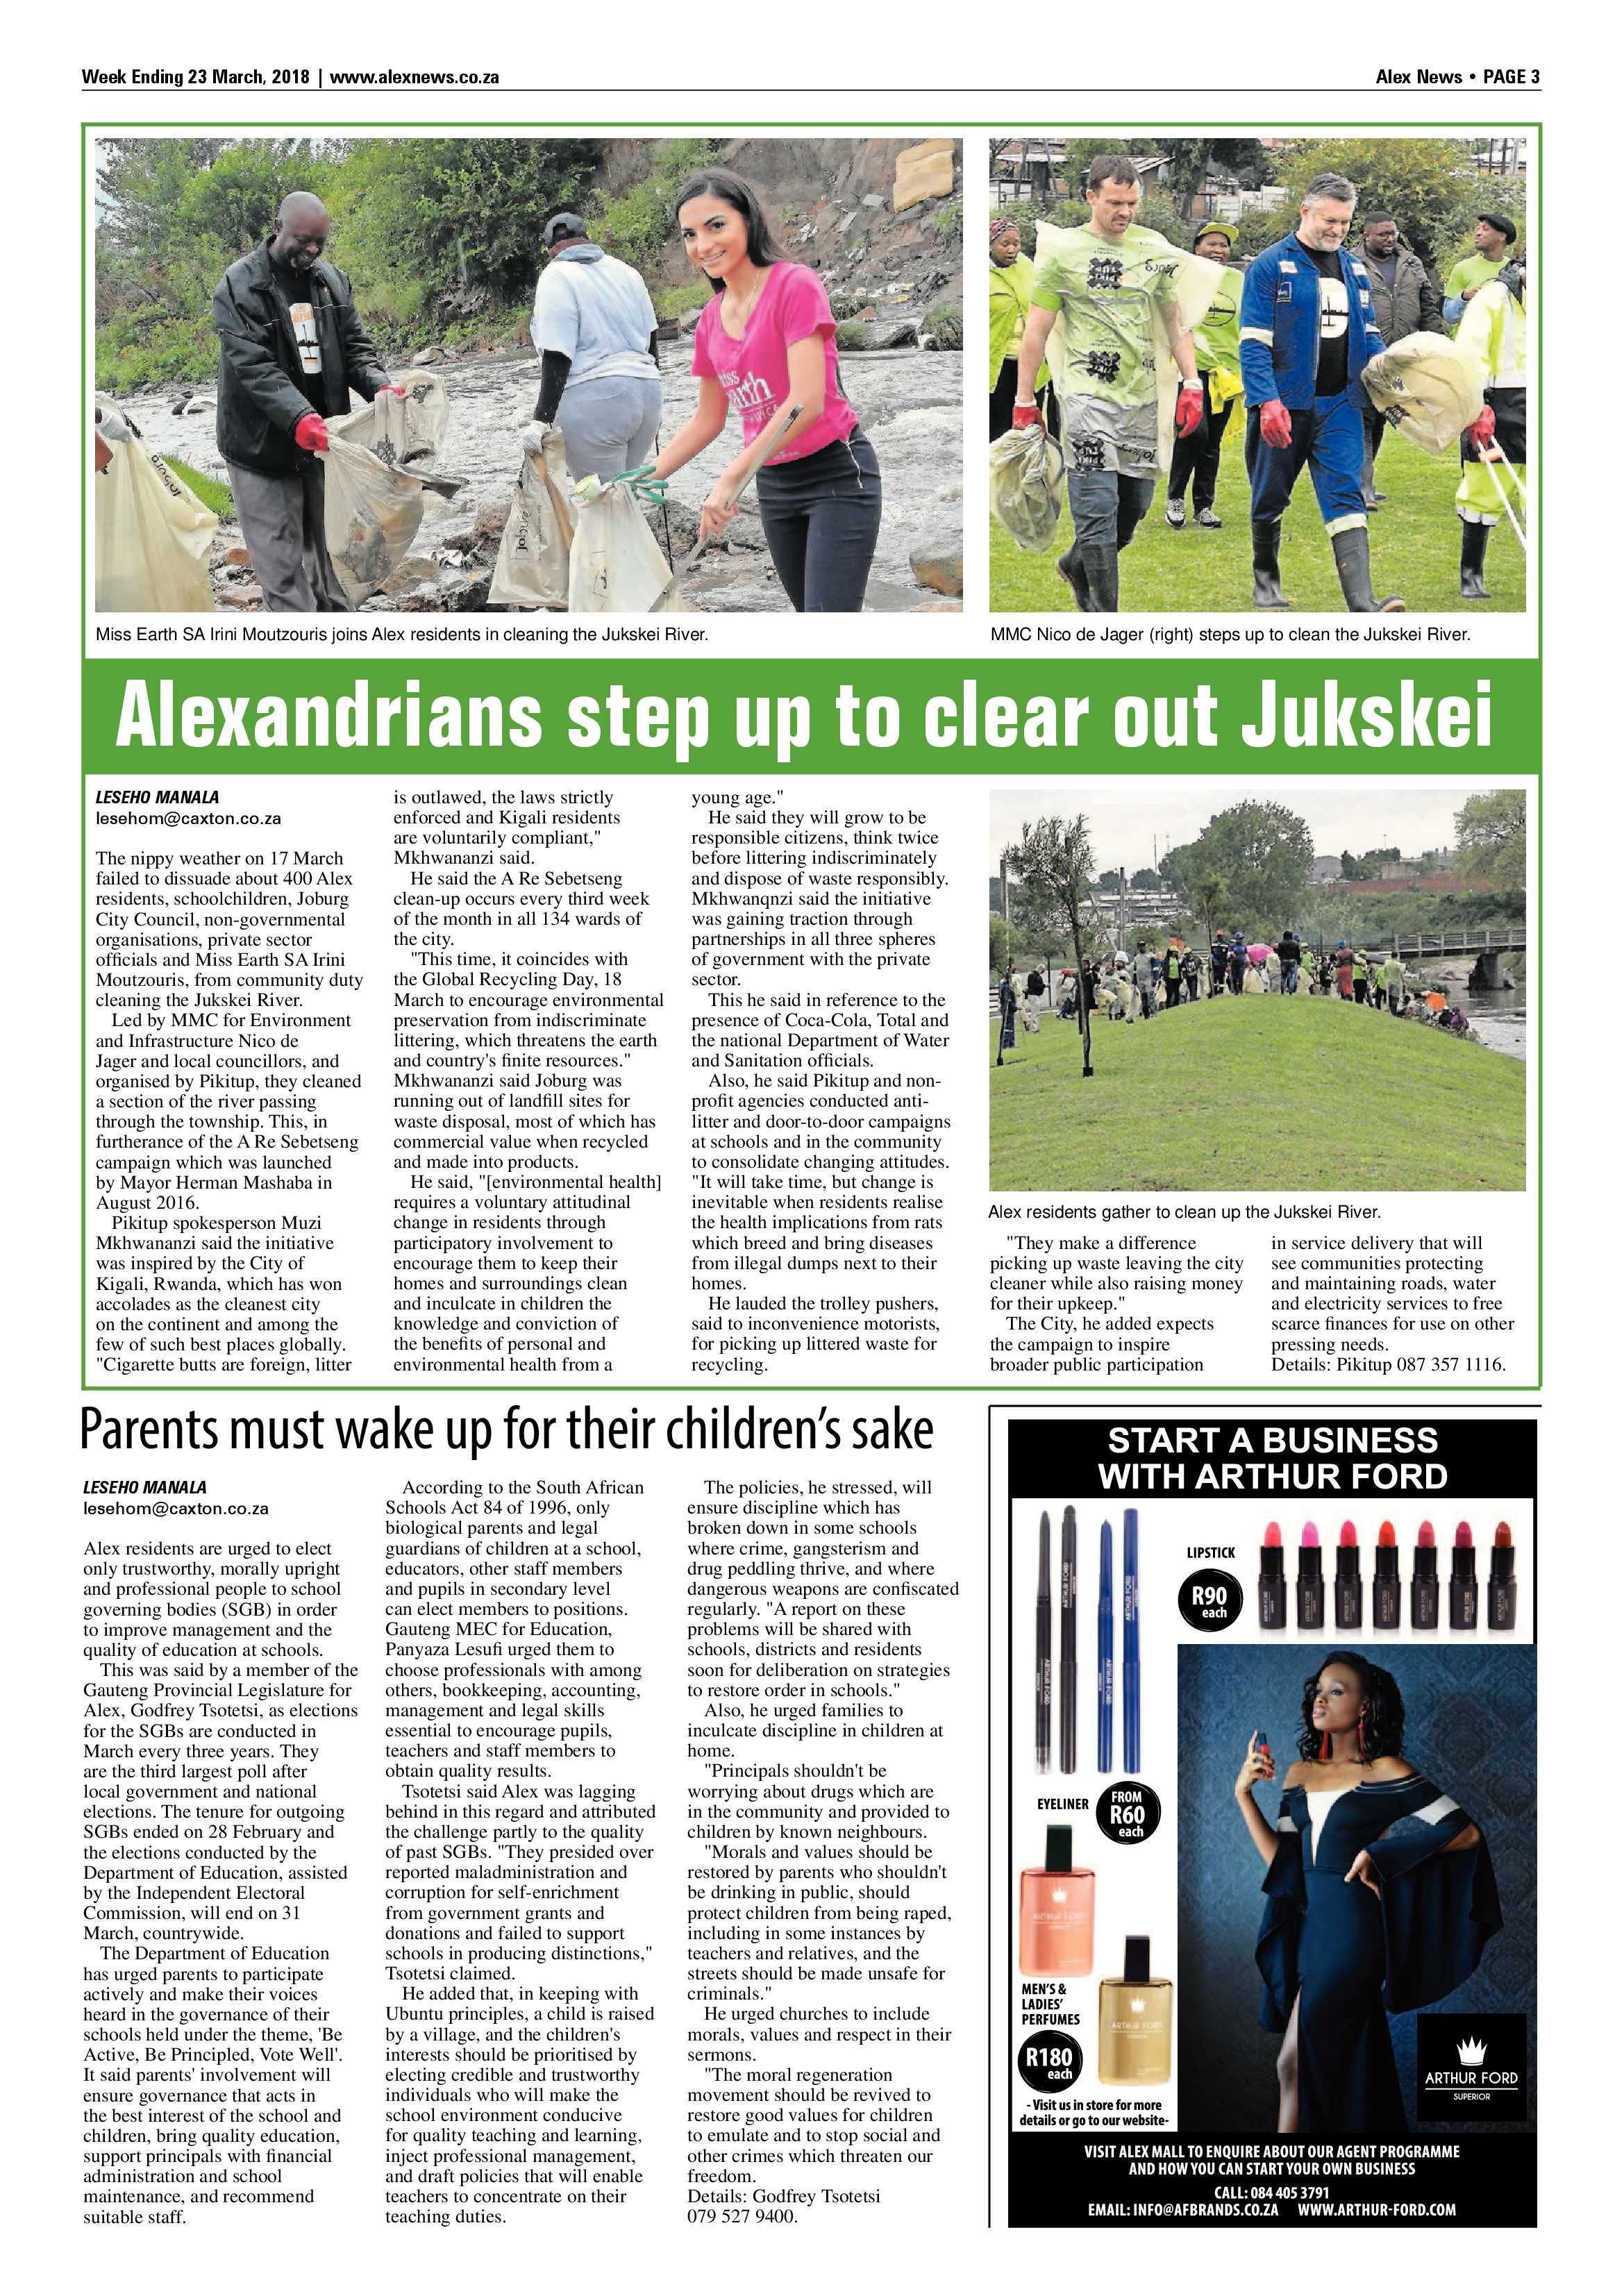 alex-news-23-march-2018-epapers-page-3